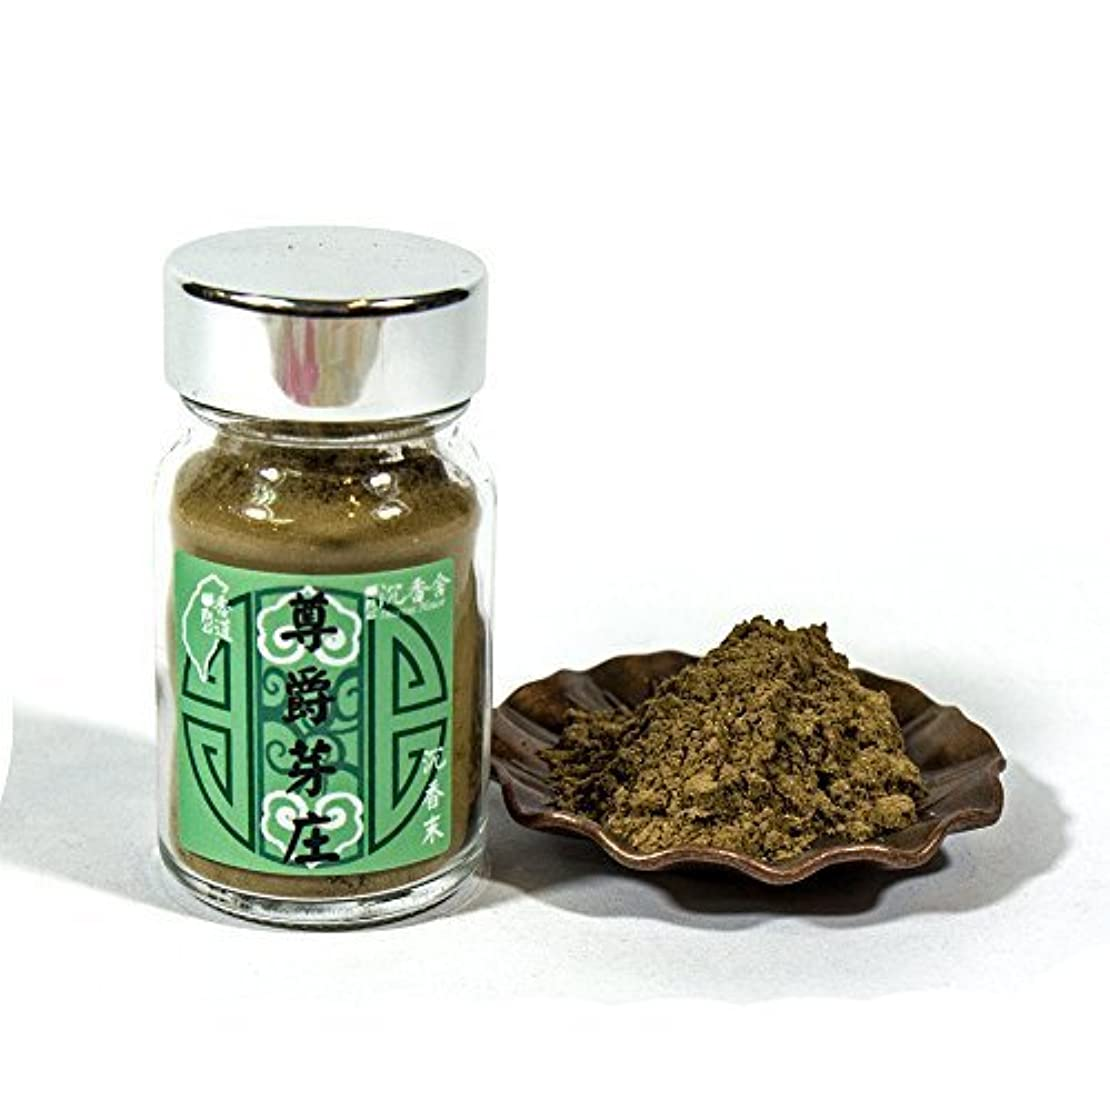 木広い欠席Agarwood Aloeswood Top Grade Old Stock NhaTrang Chen Xiang Incense Powder 10g by IncenseHouse - Raw Material [...